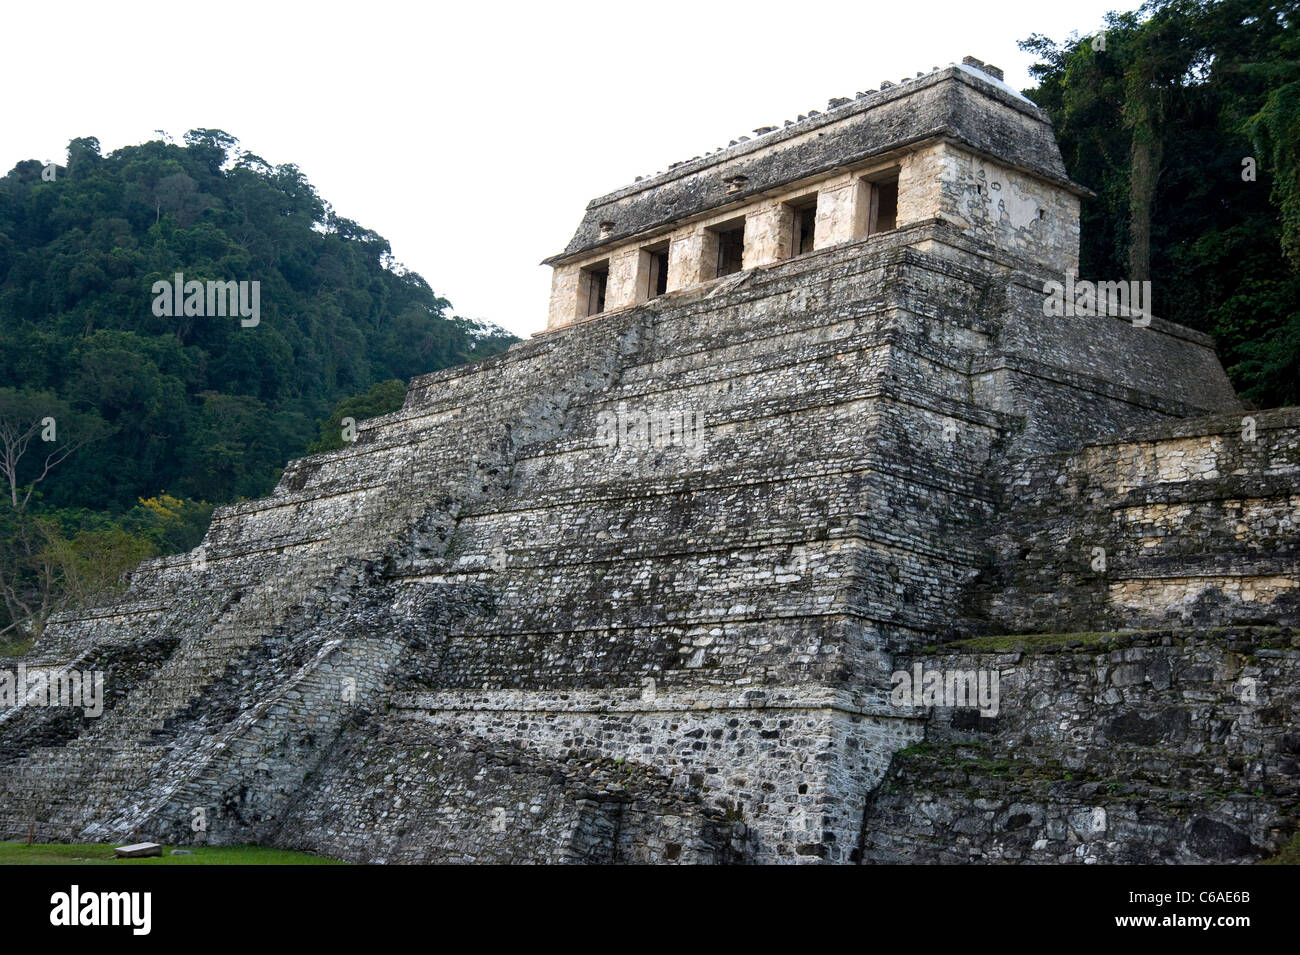 Mayan Ruins at Palenque, Mexico - Stock Image